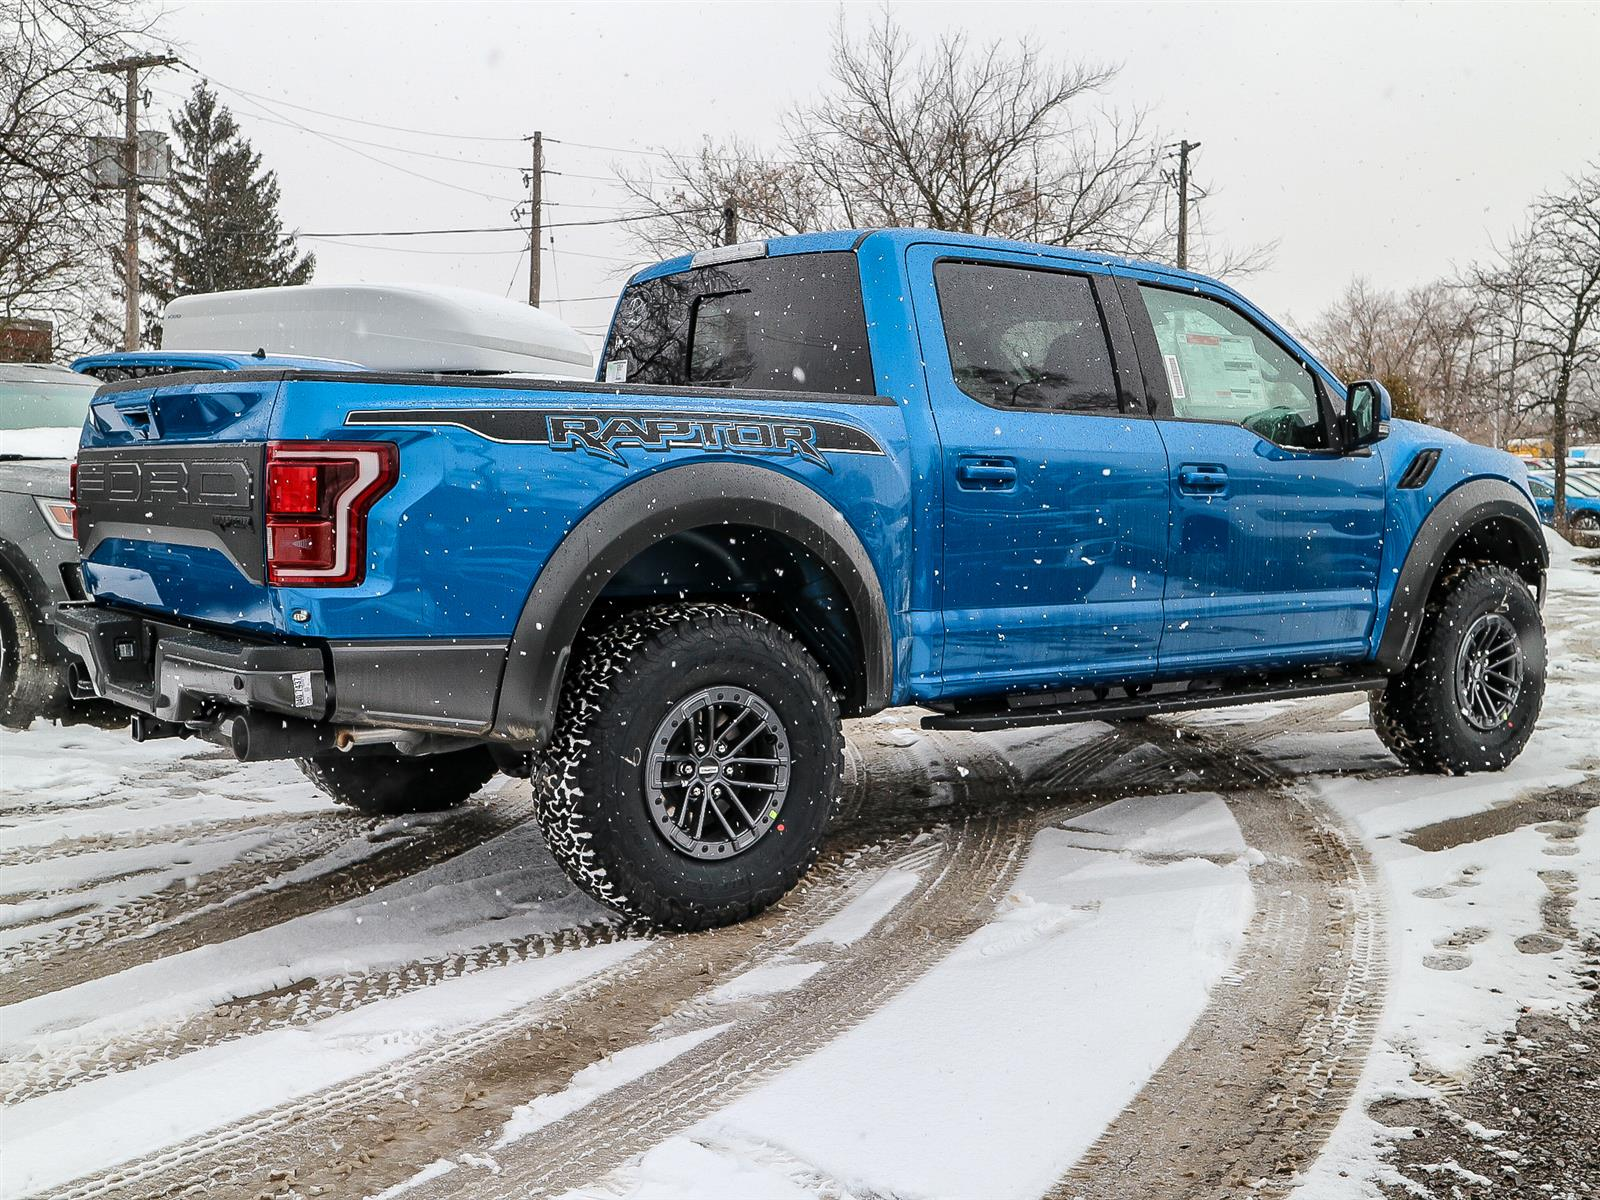 Leggat Discovery Ford | 2020 Ford F-150 Raptor Velocity ...